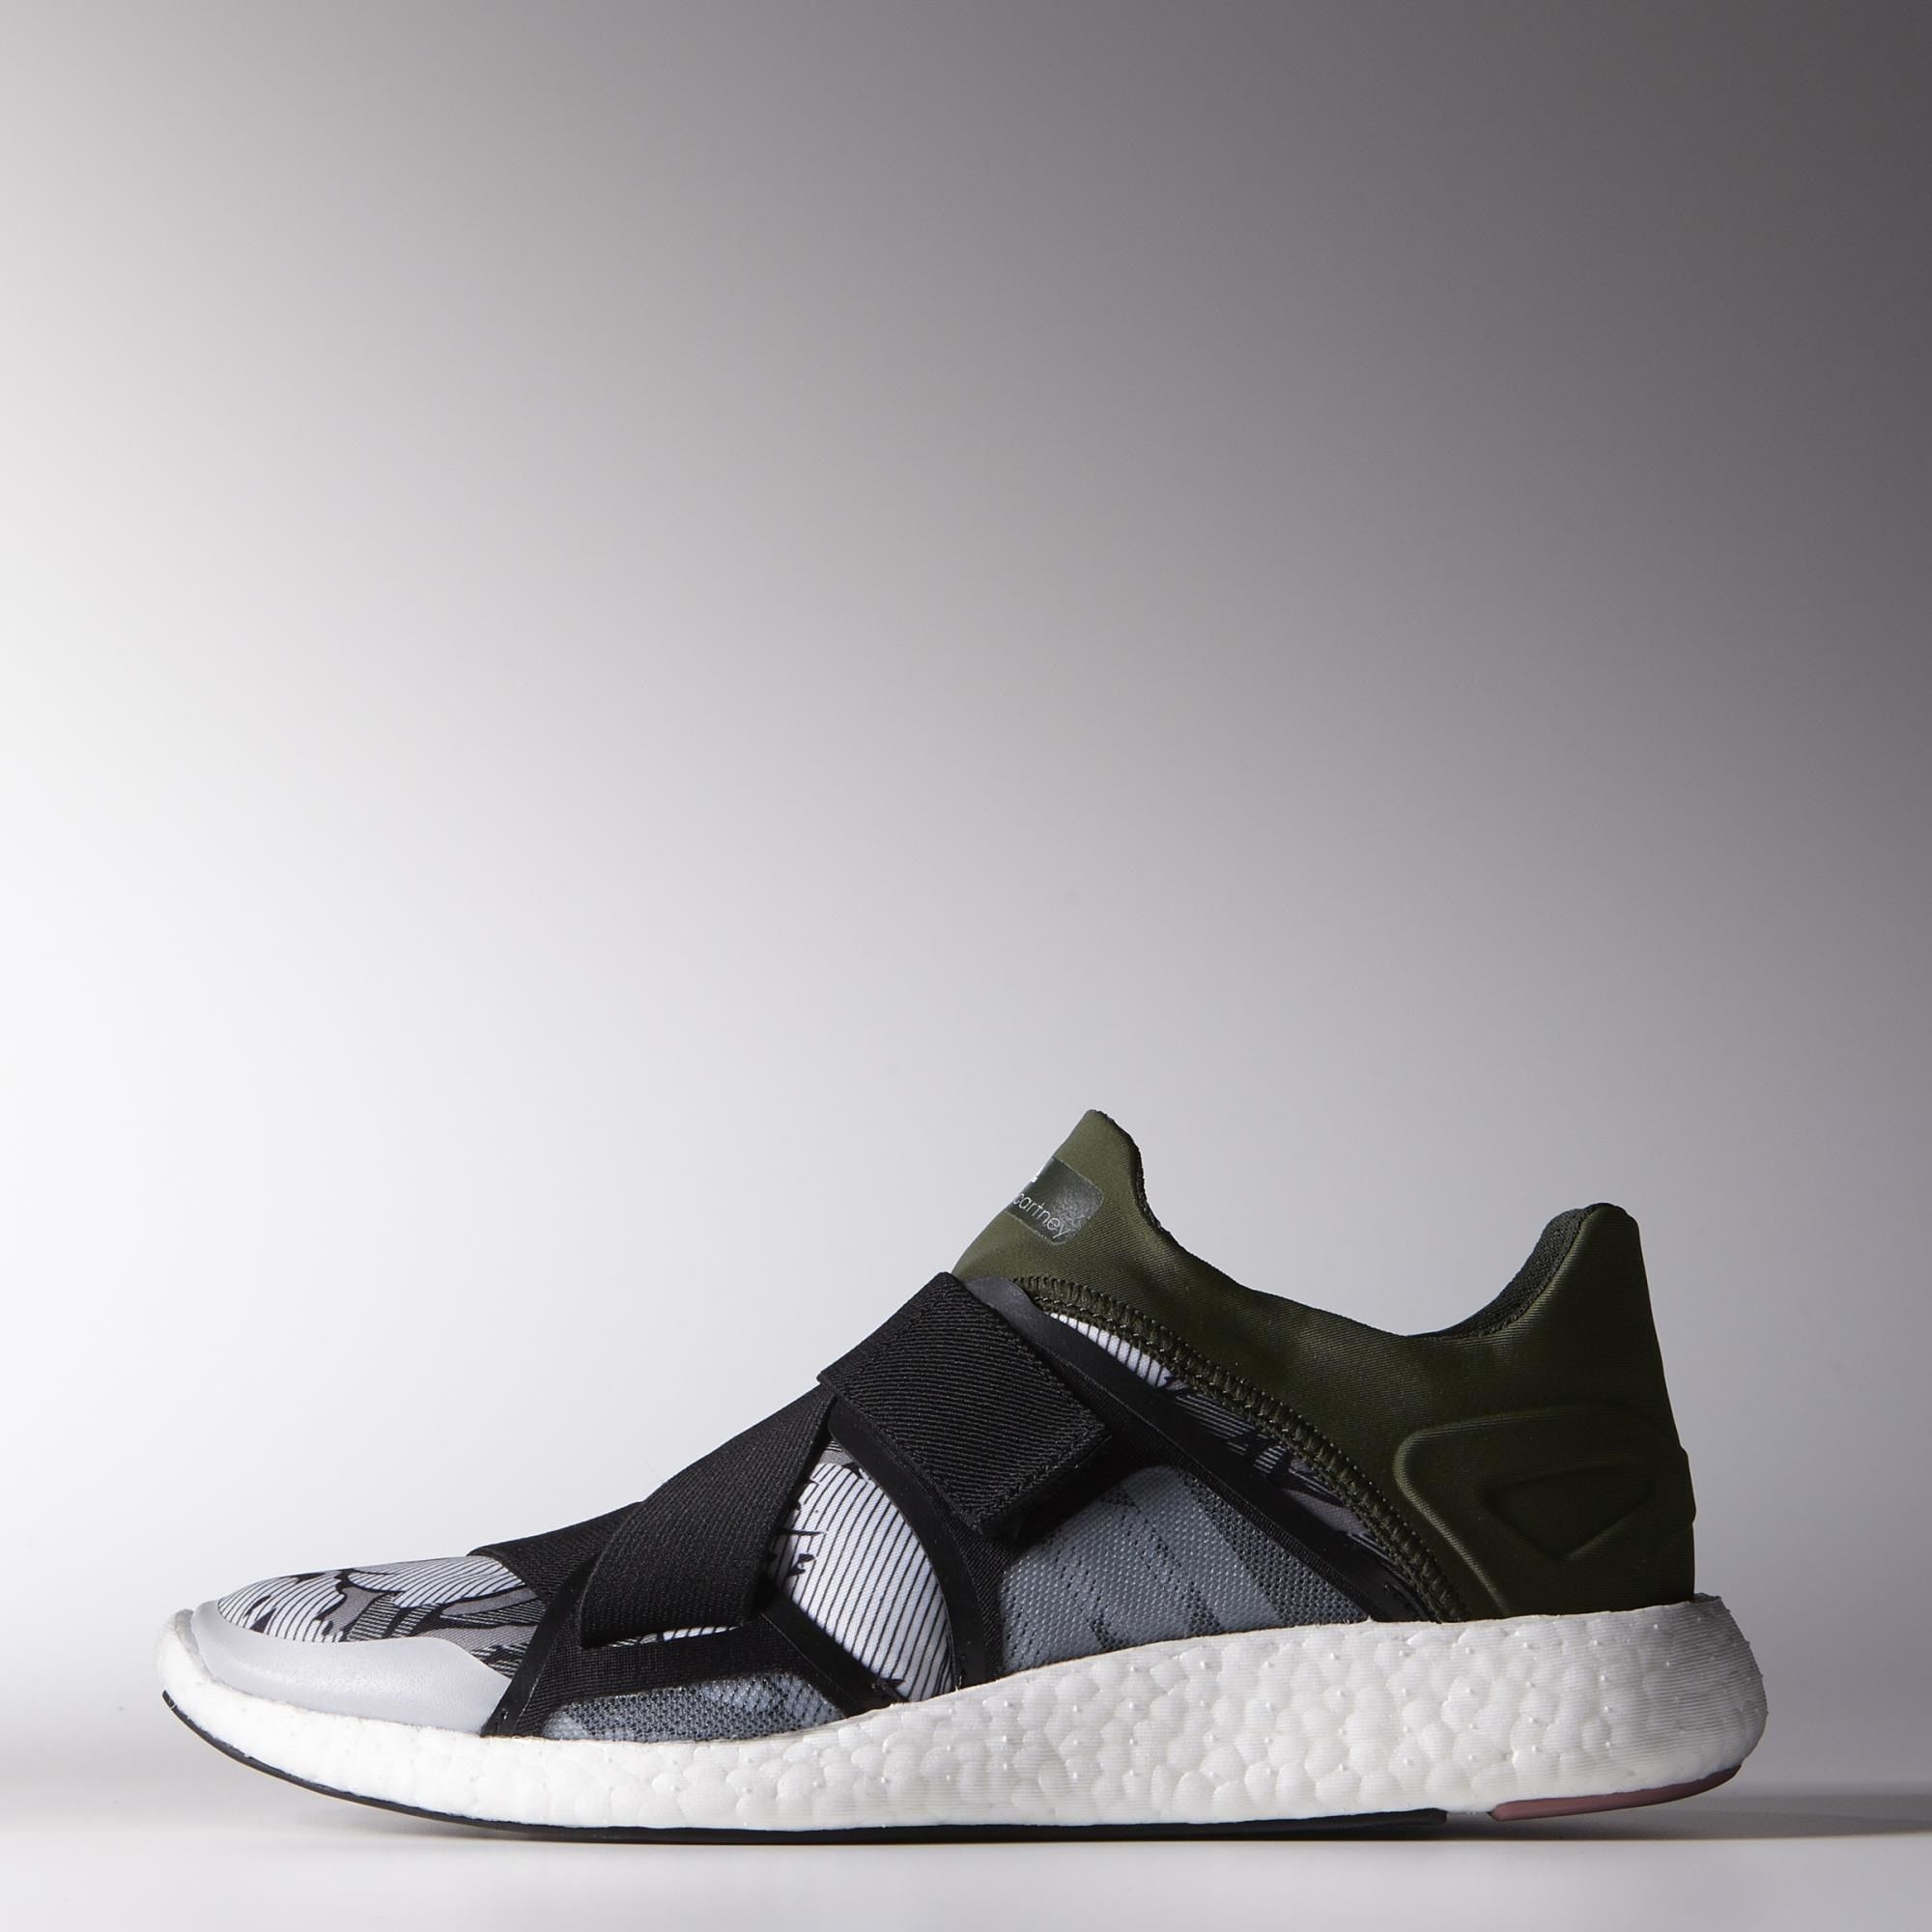 promo code 1cebb 70dda Sheer and streamlined, the adidas by Stella McCartney Pure Boost Shoes  equip your run with